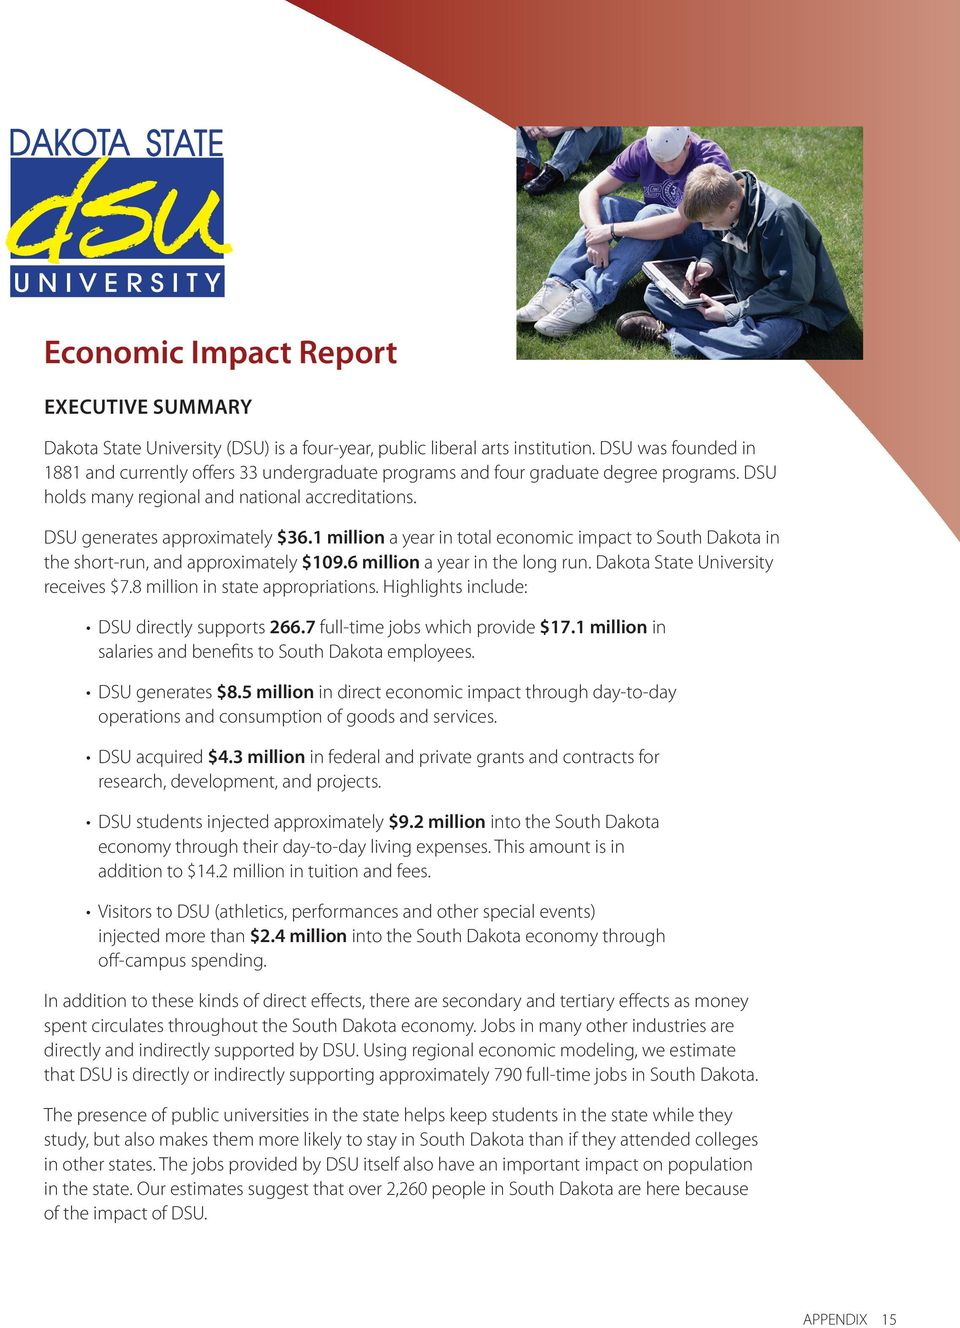 1 million a year in total economic impact to South Dakota in the short-run, and approximately $109.6 million a year in the long run. Dakota State University receives $7.